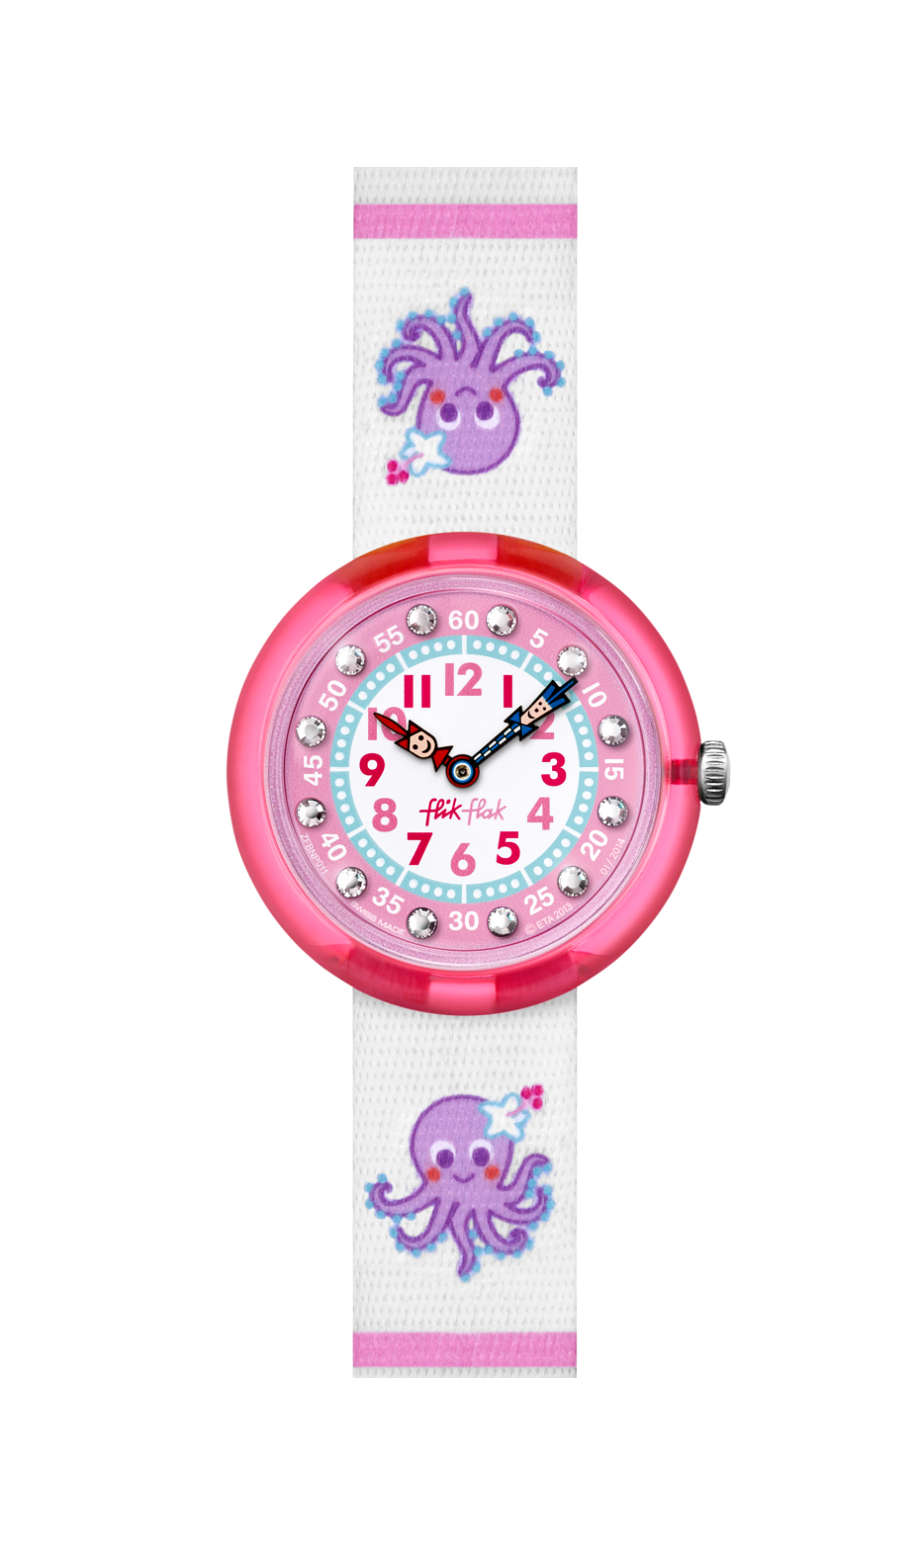 Flik Flak Octostripe, FBNP011C, pink, swatch for kids